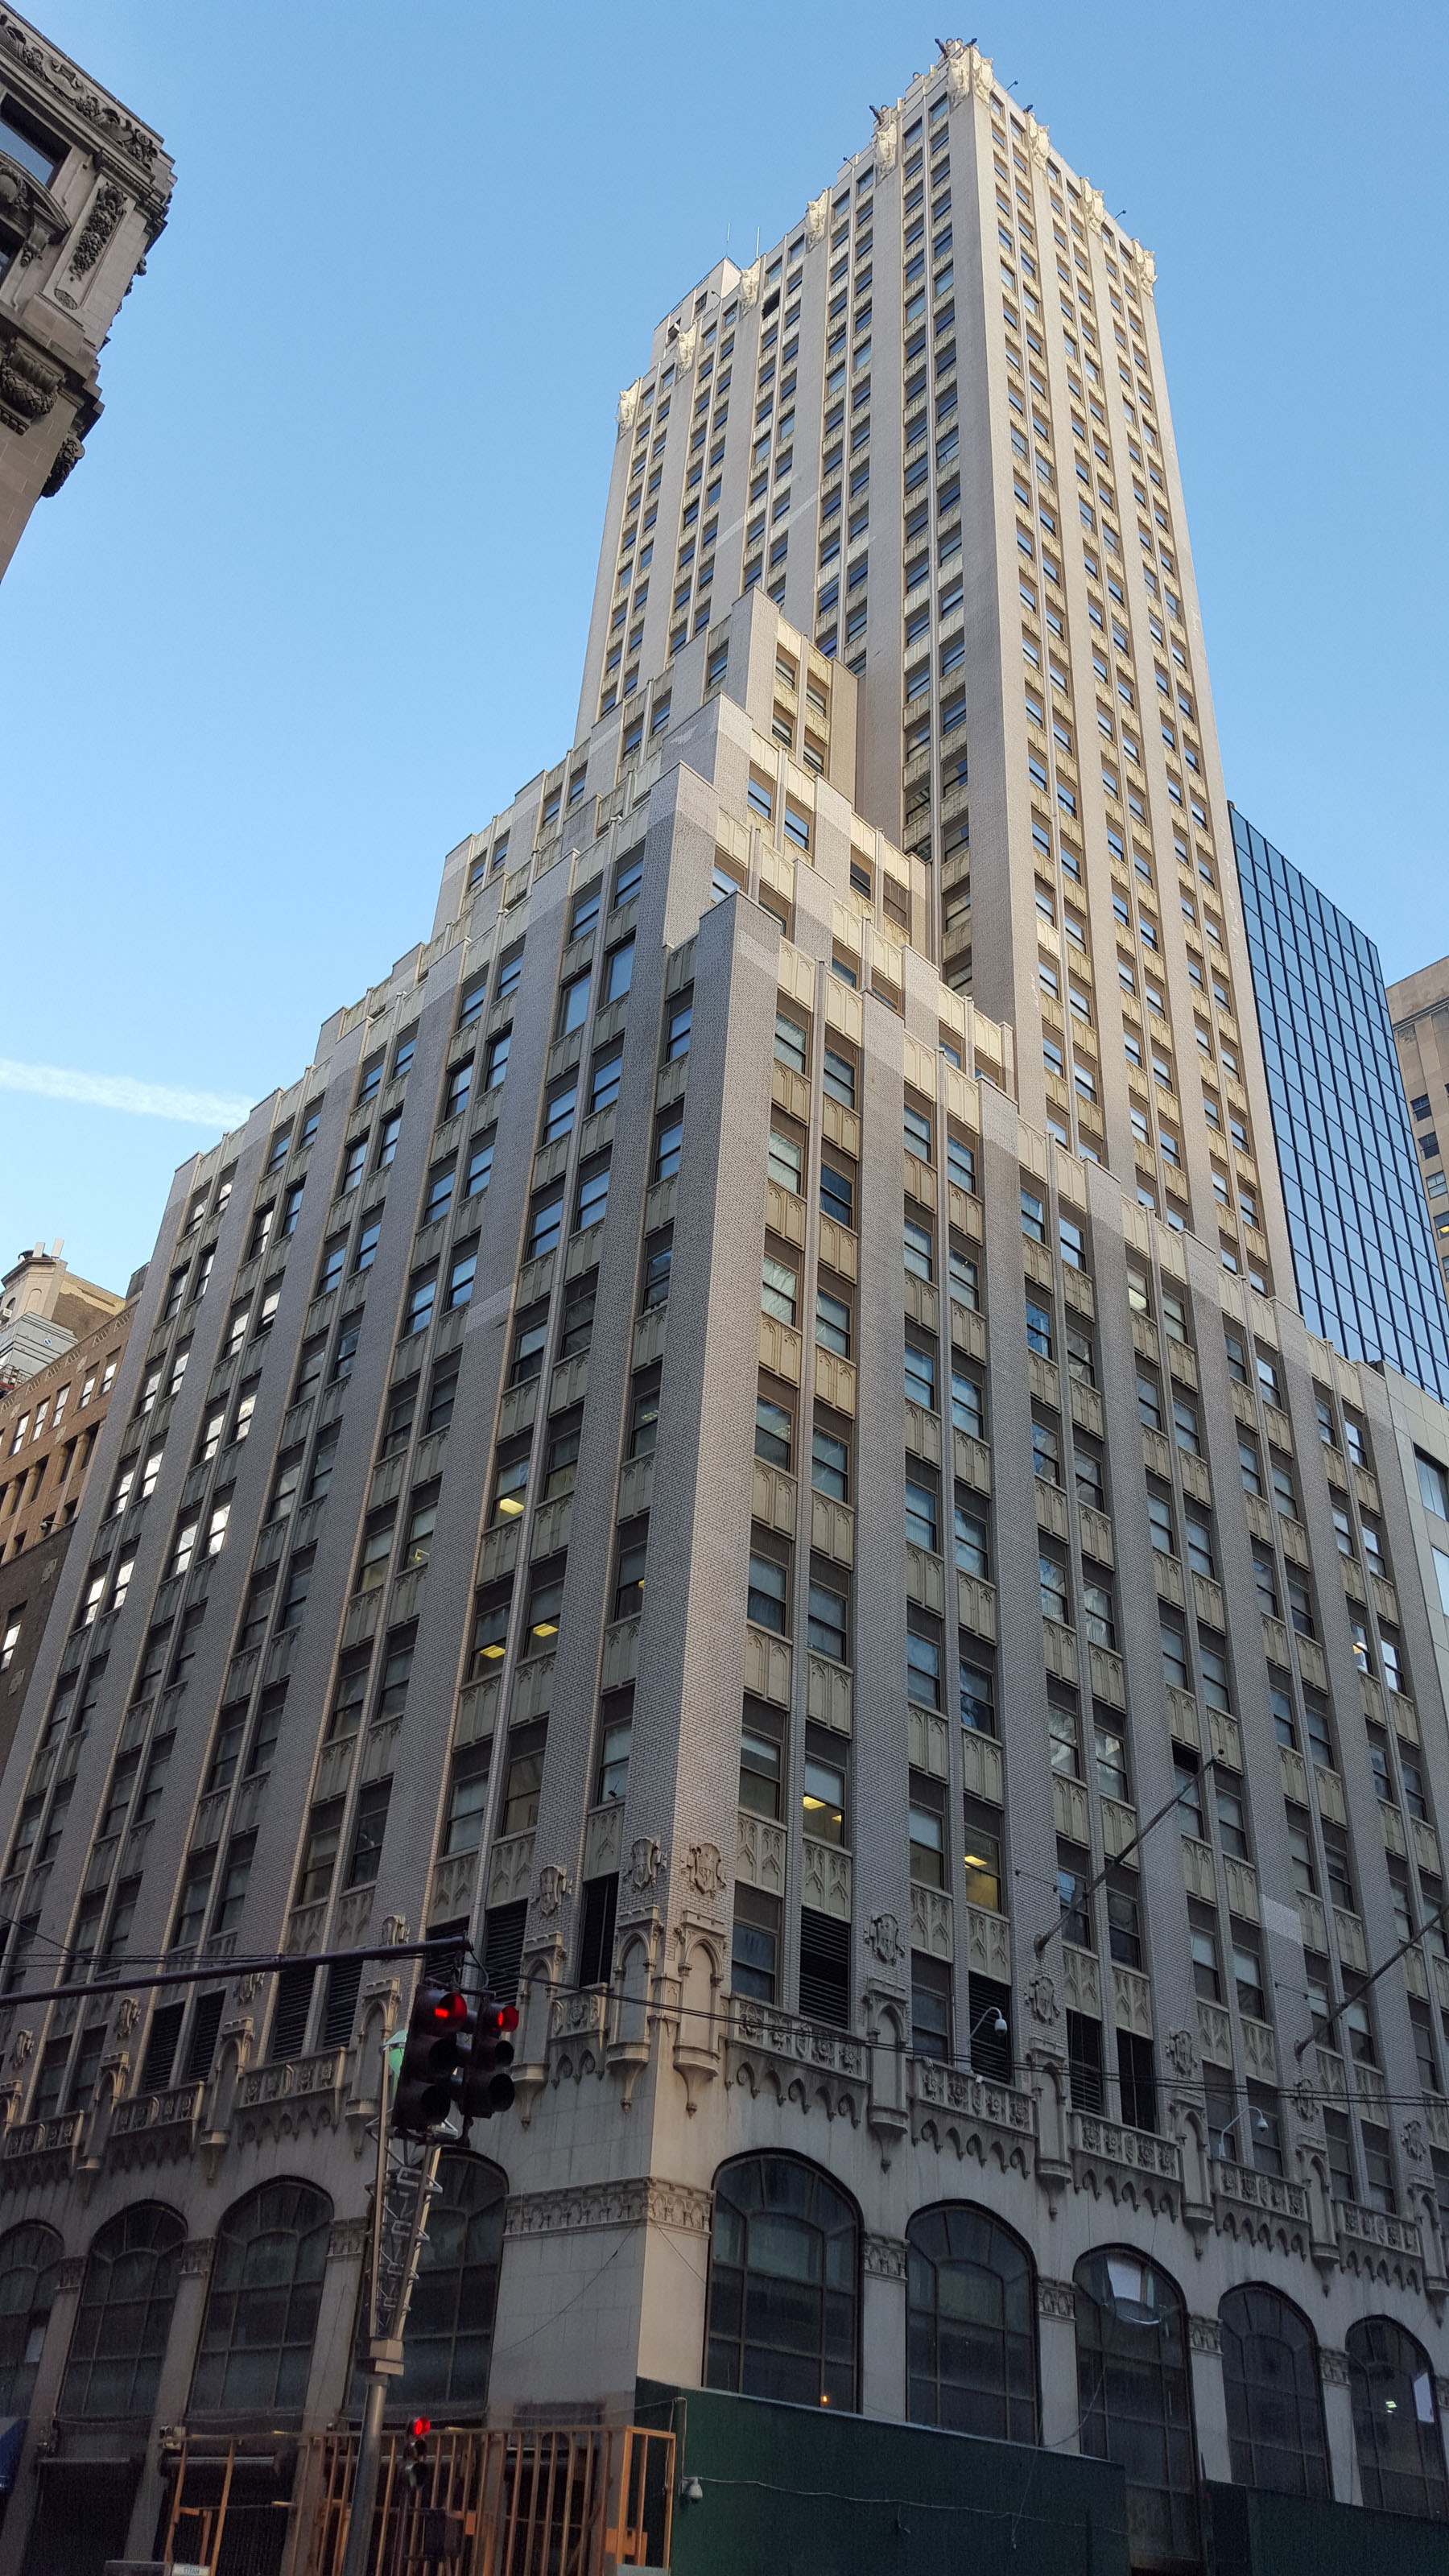 580 Fifth Avenue The World Diamond Building